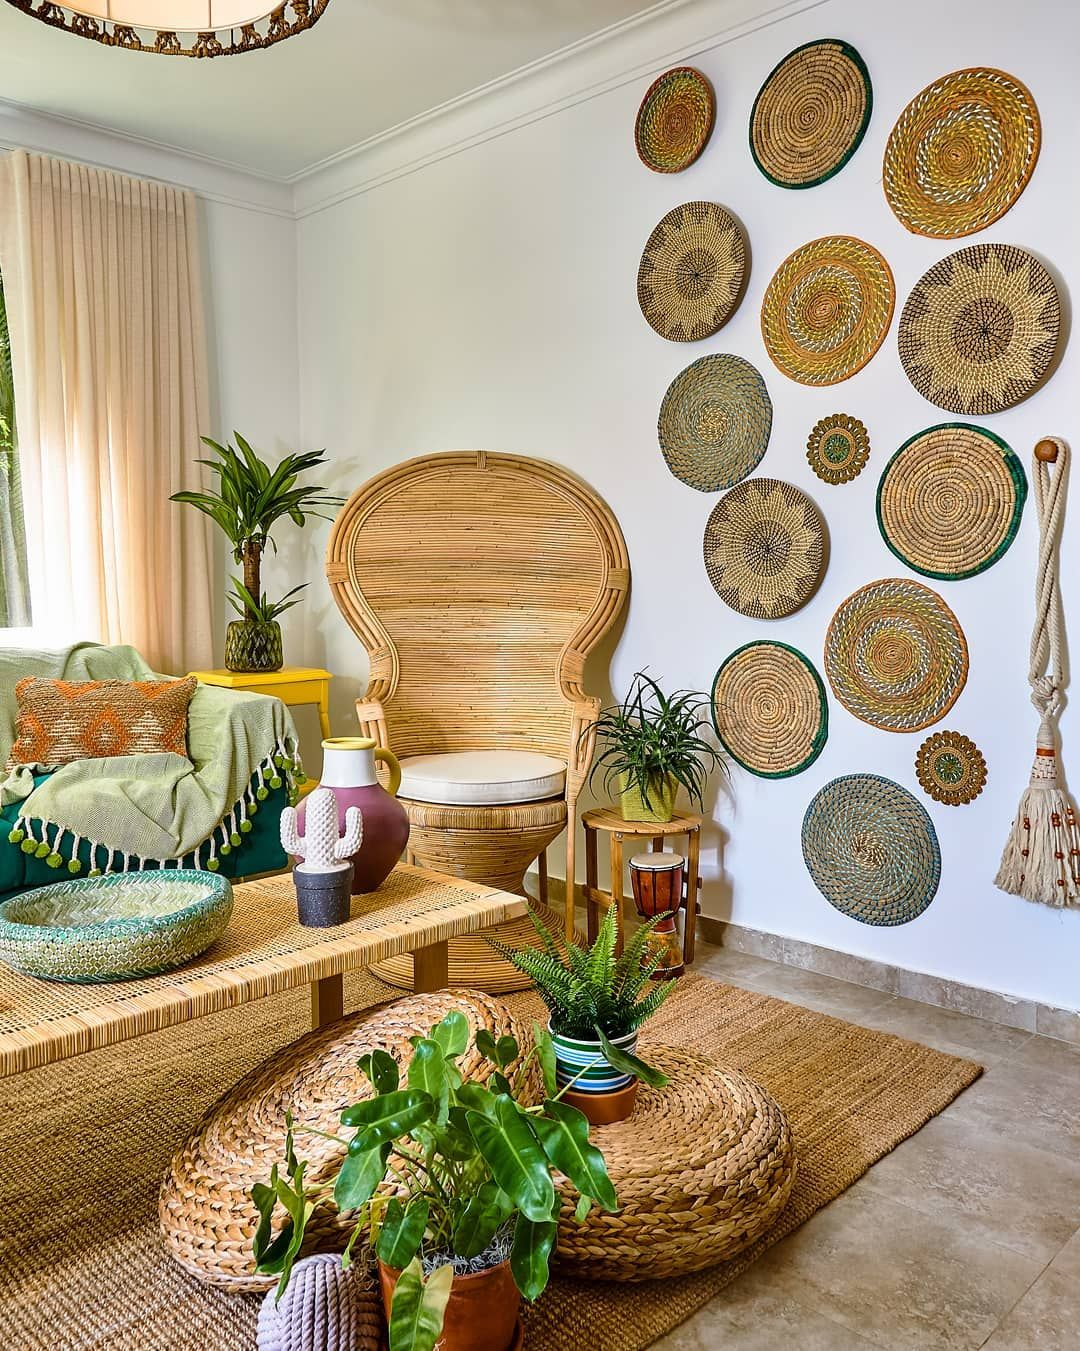 With These Caribbean Decor Ideas You Can Easily Add A Little More Island Flair To Your Family Home N Caribbean Decor Caribbean Interior Design Tropical Decor